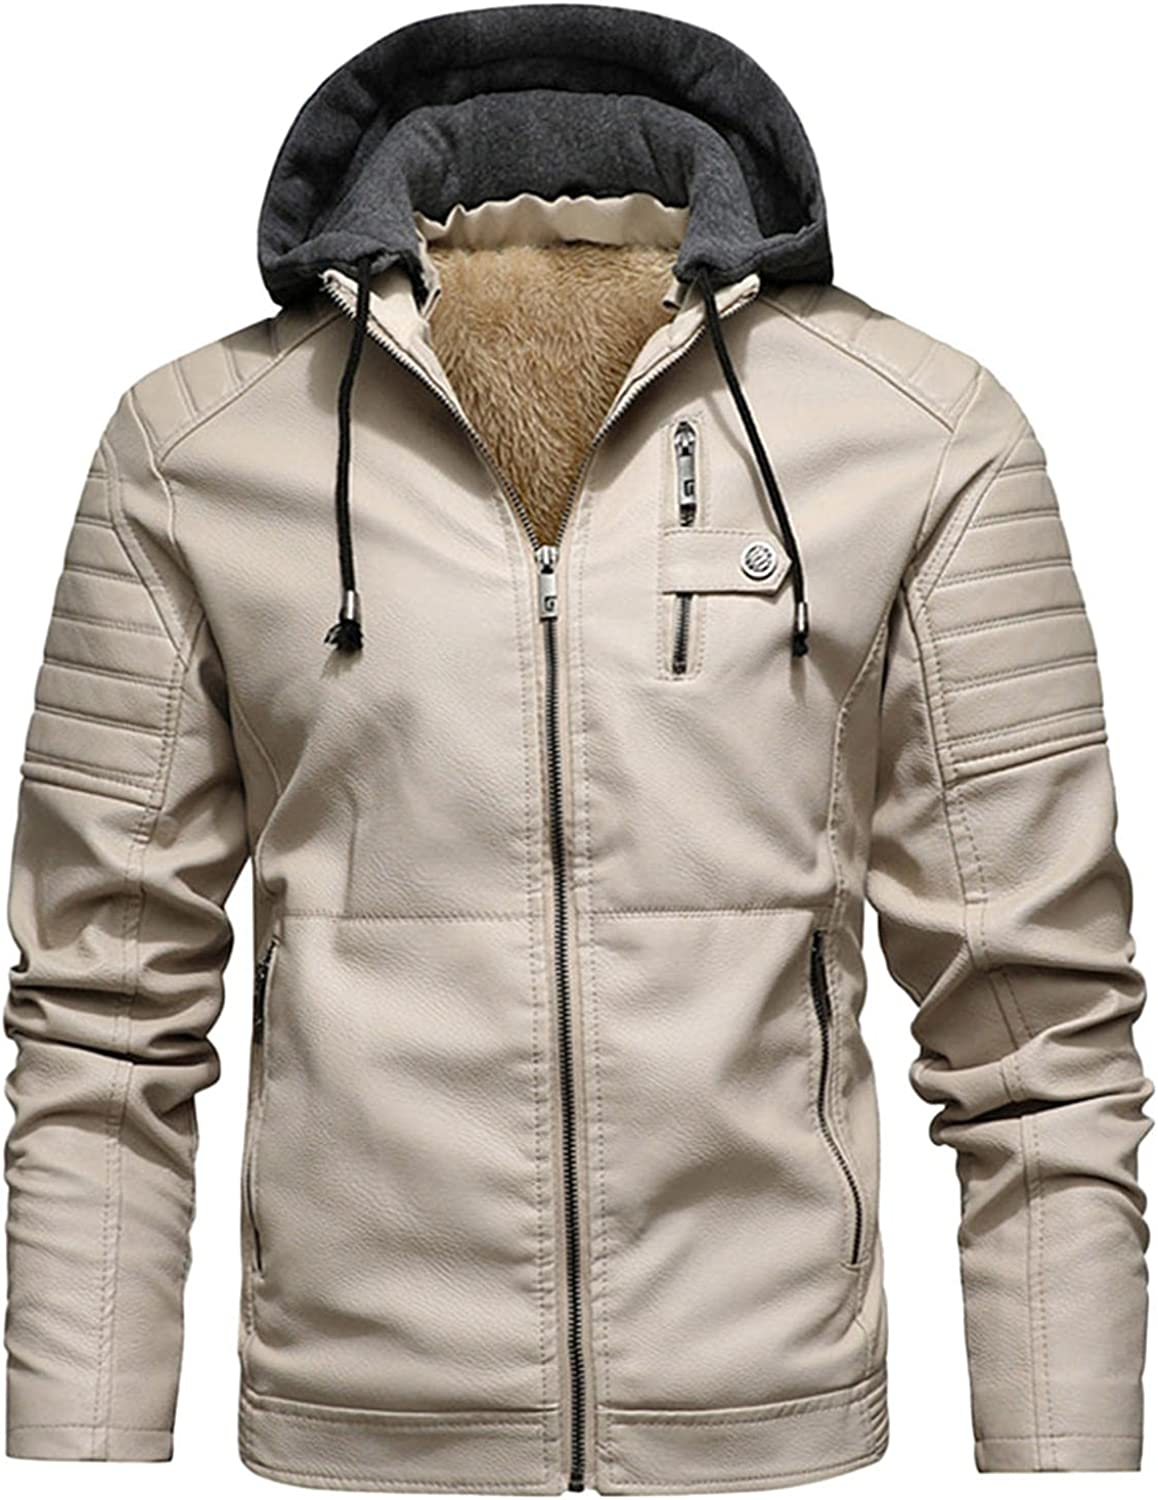 Leather Jacket Men Motorcycle, Men'S Casual Stand Collar Pu Faux Leather Zip Up Bomber Jacket with A Removable Hood